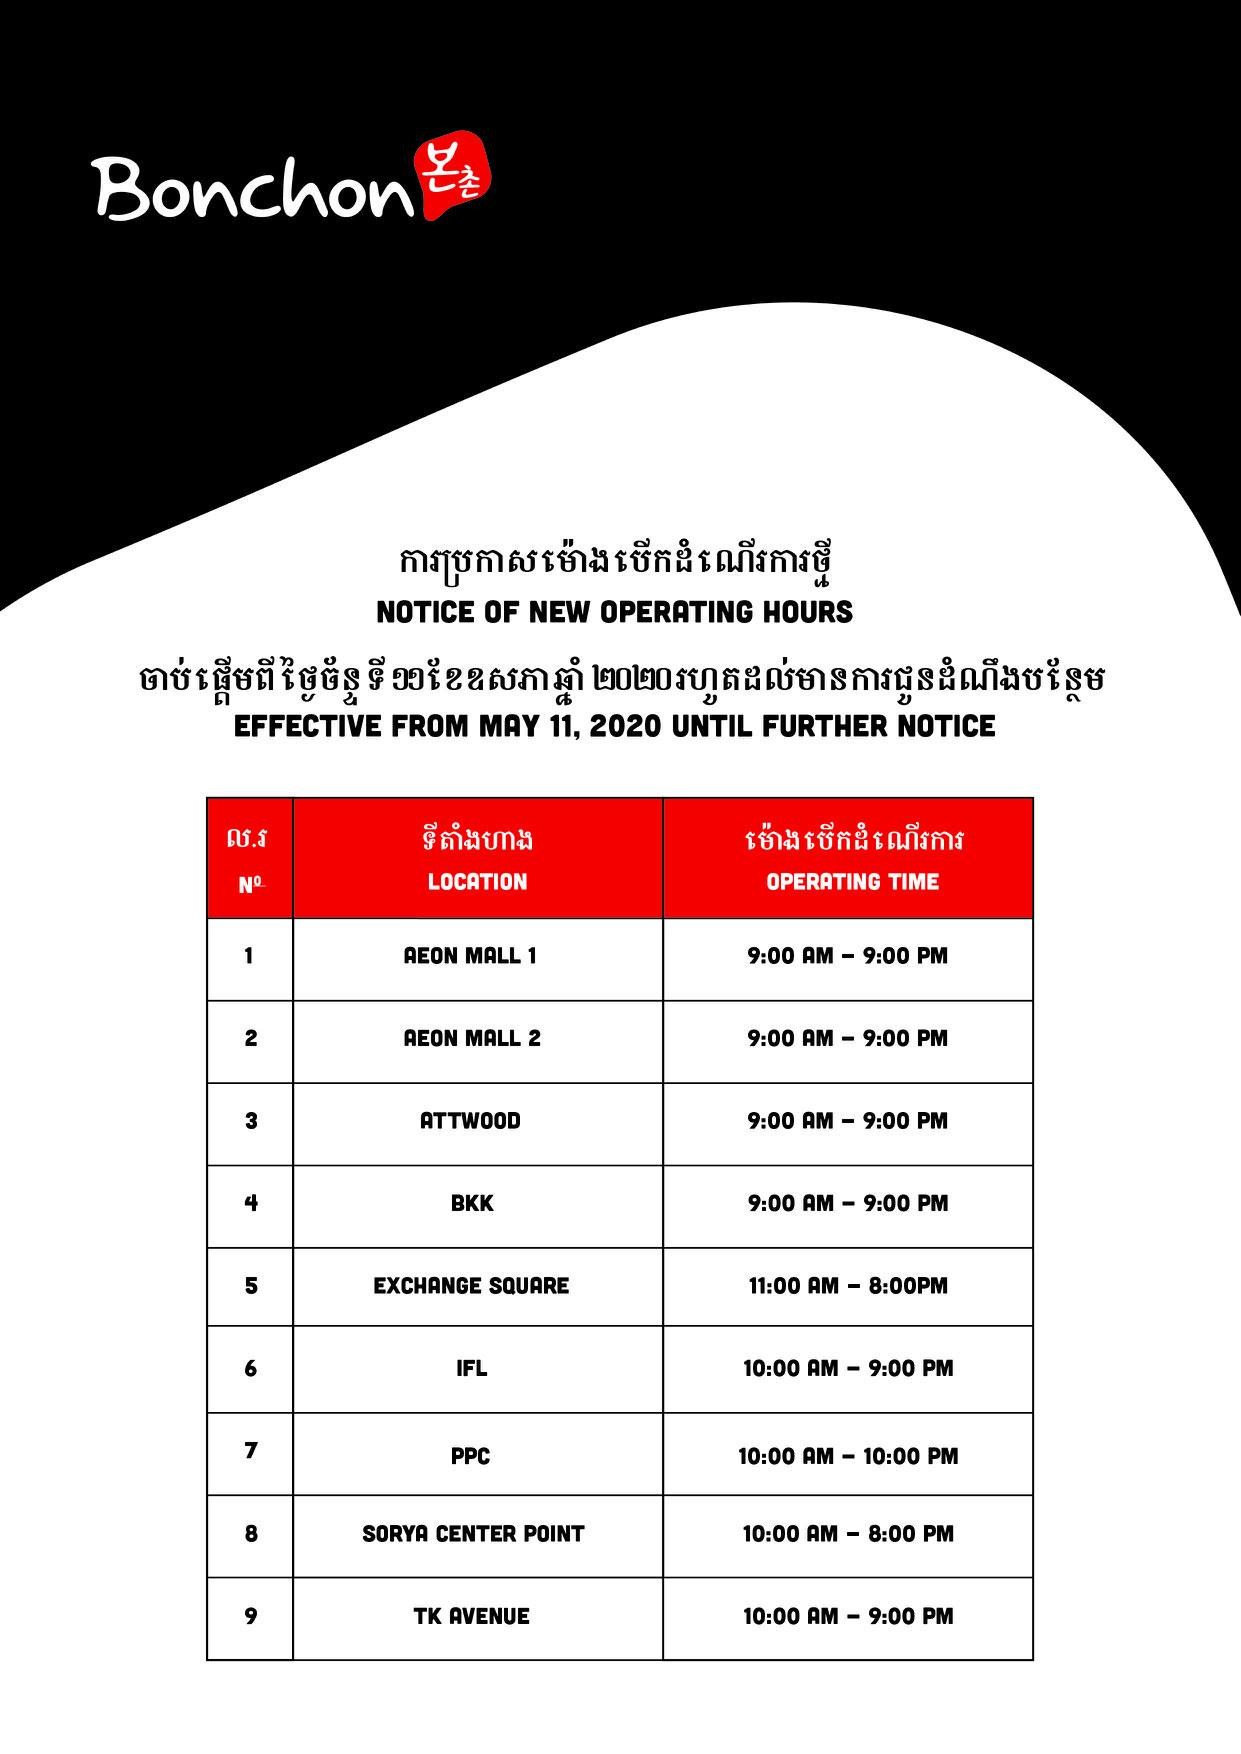 Notice of New Operating Hours